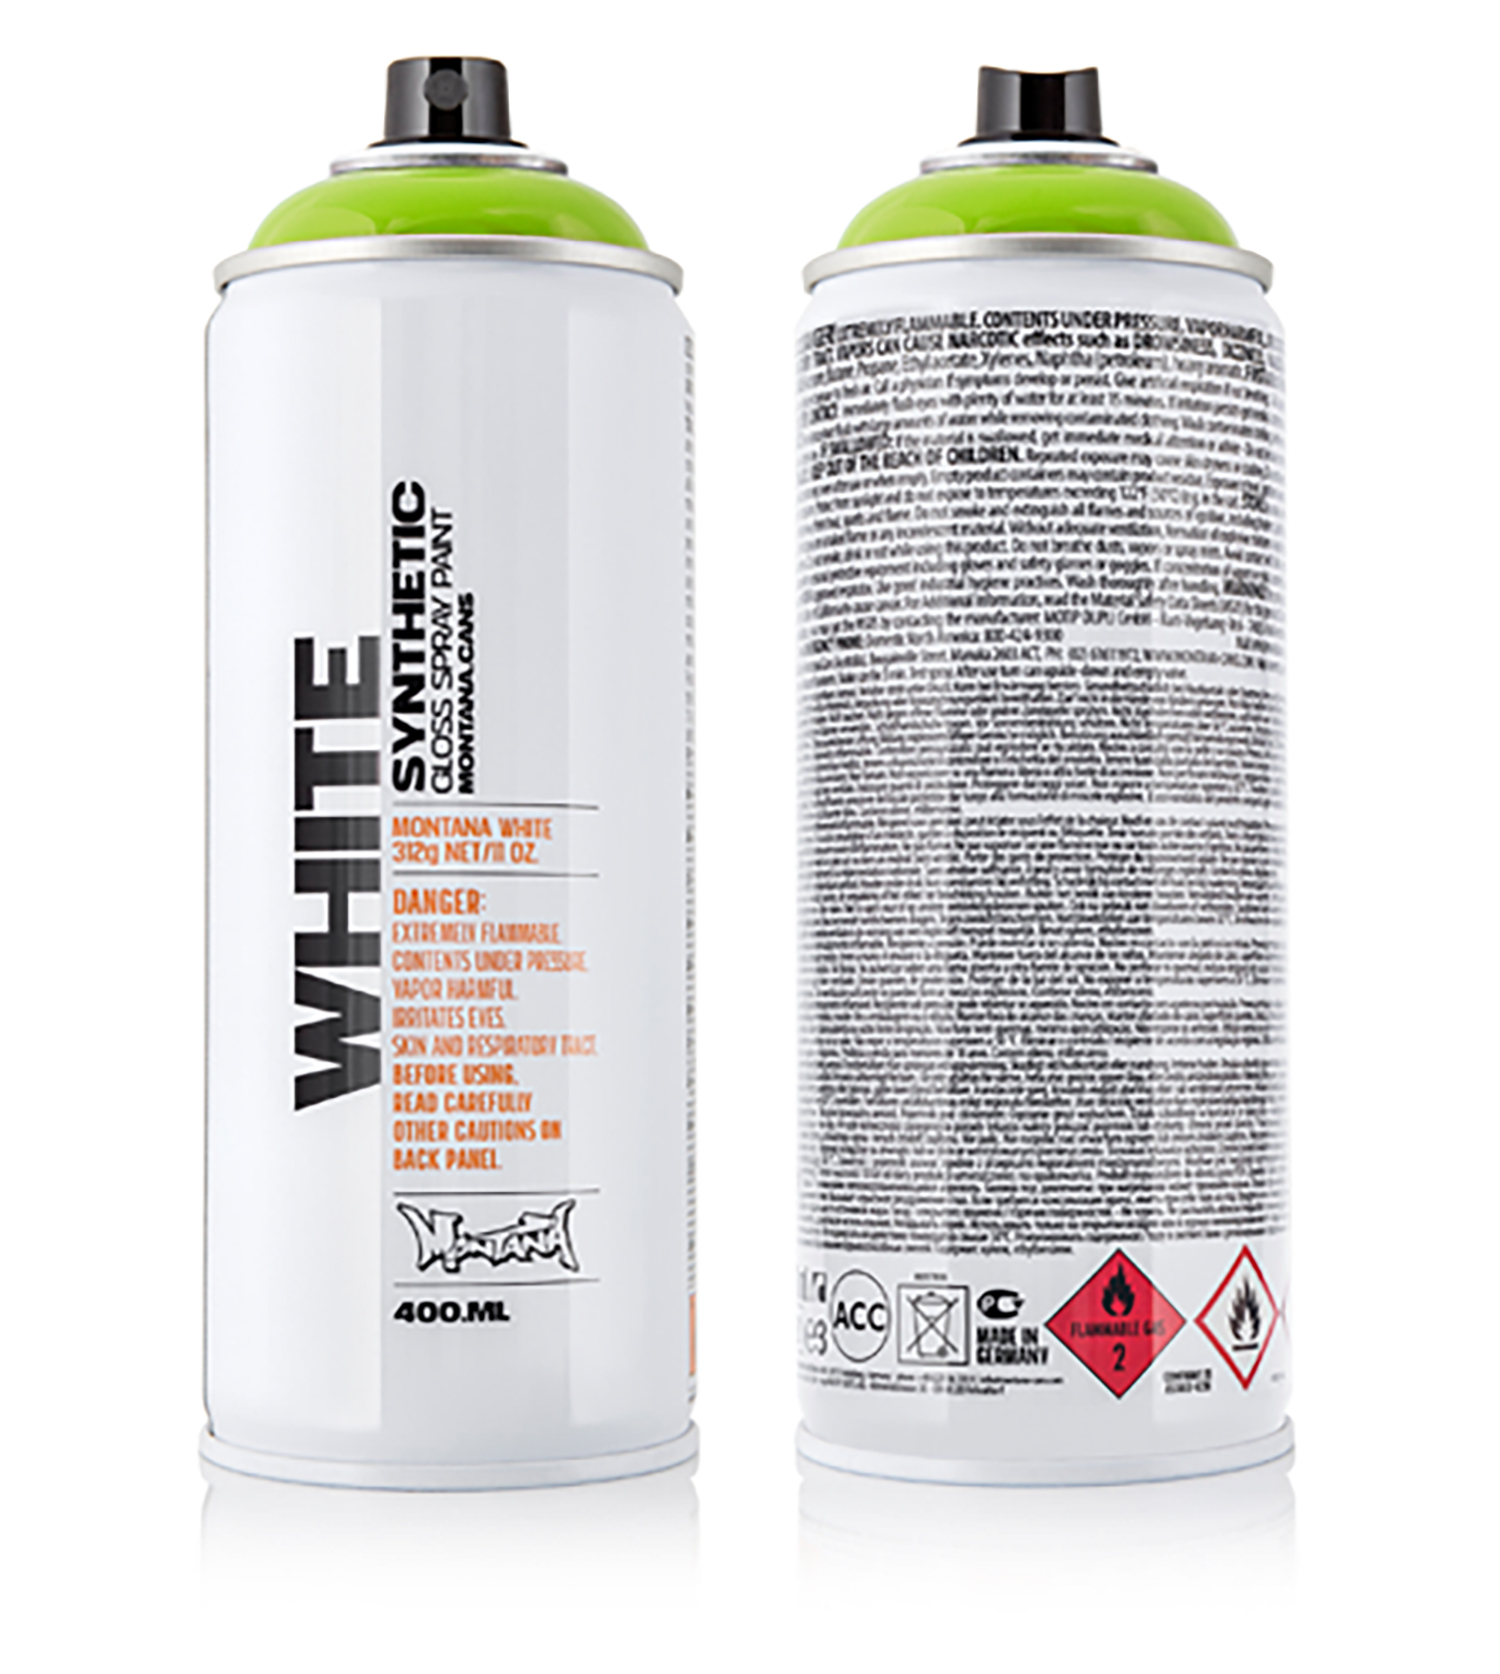 MONTANA-WHITE-SPRAY-400ML-6015